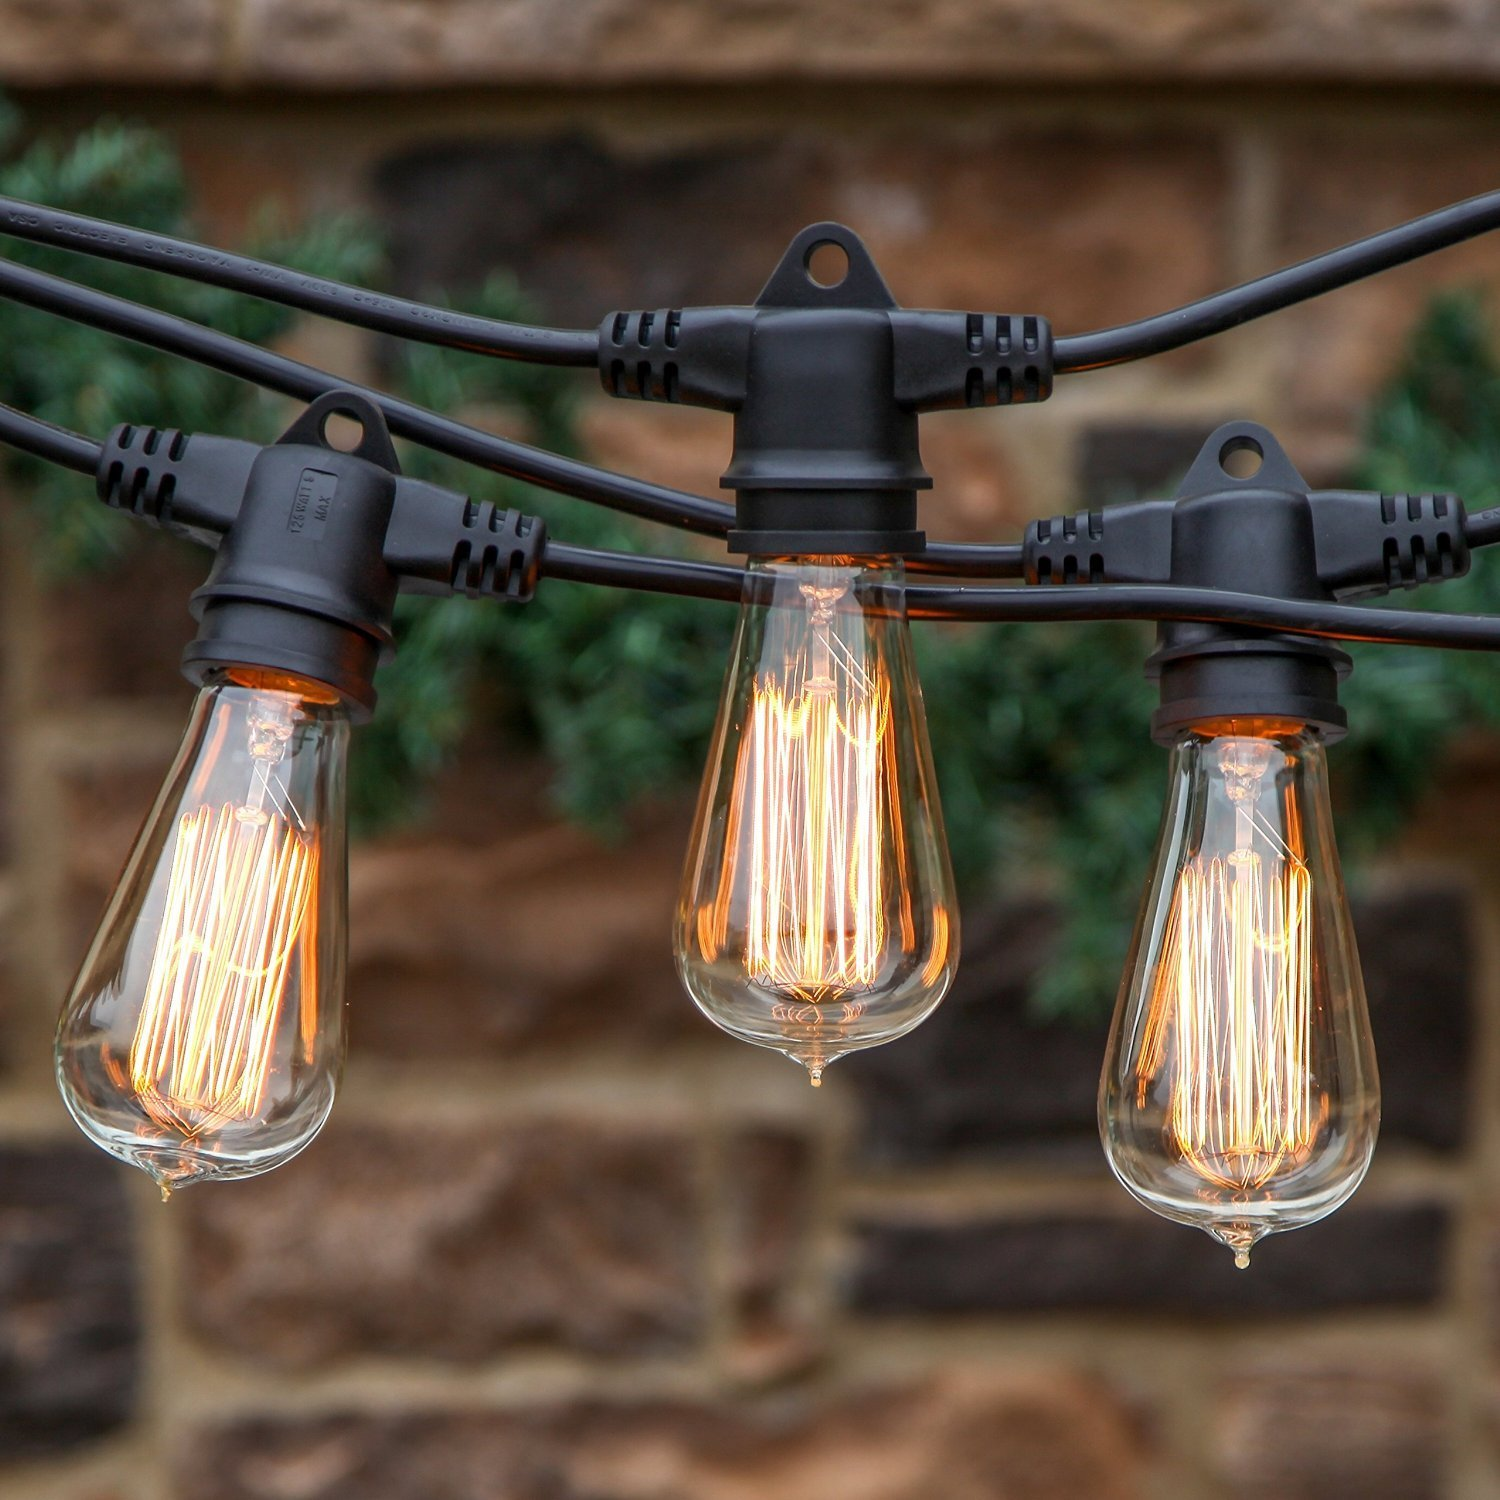 Brightech ambience pro vintage edition with weathertite technology brightech ambience pro vintage edition with weathertite technology outdoor weatherproof commercial grade lights with included antique edison bulbs workwithnaturefo